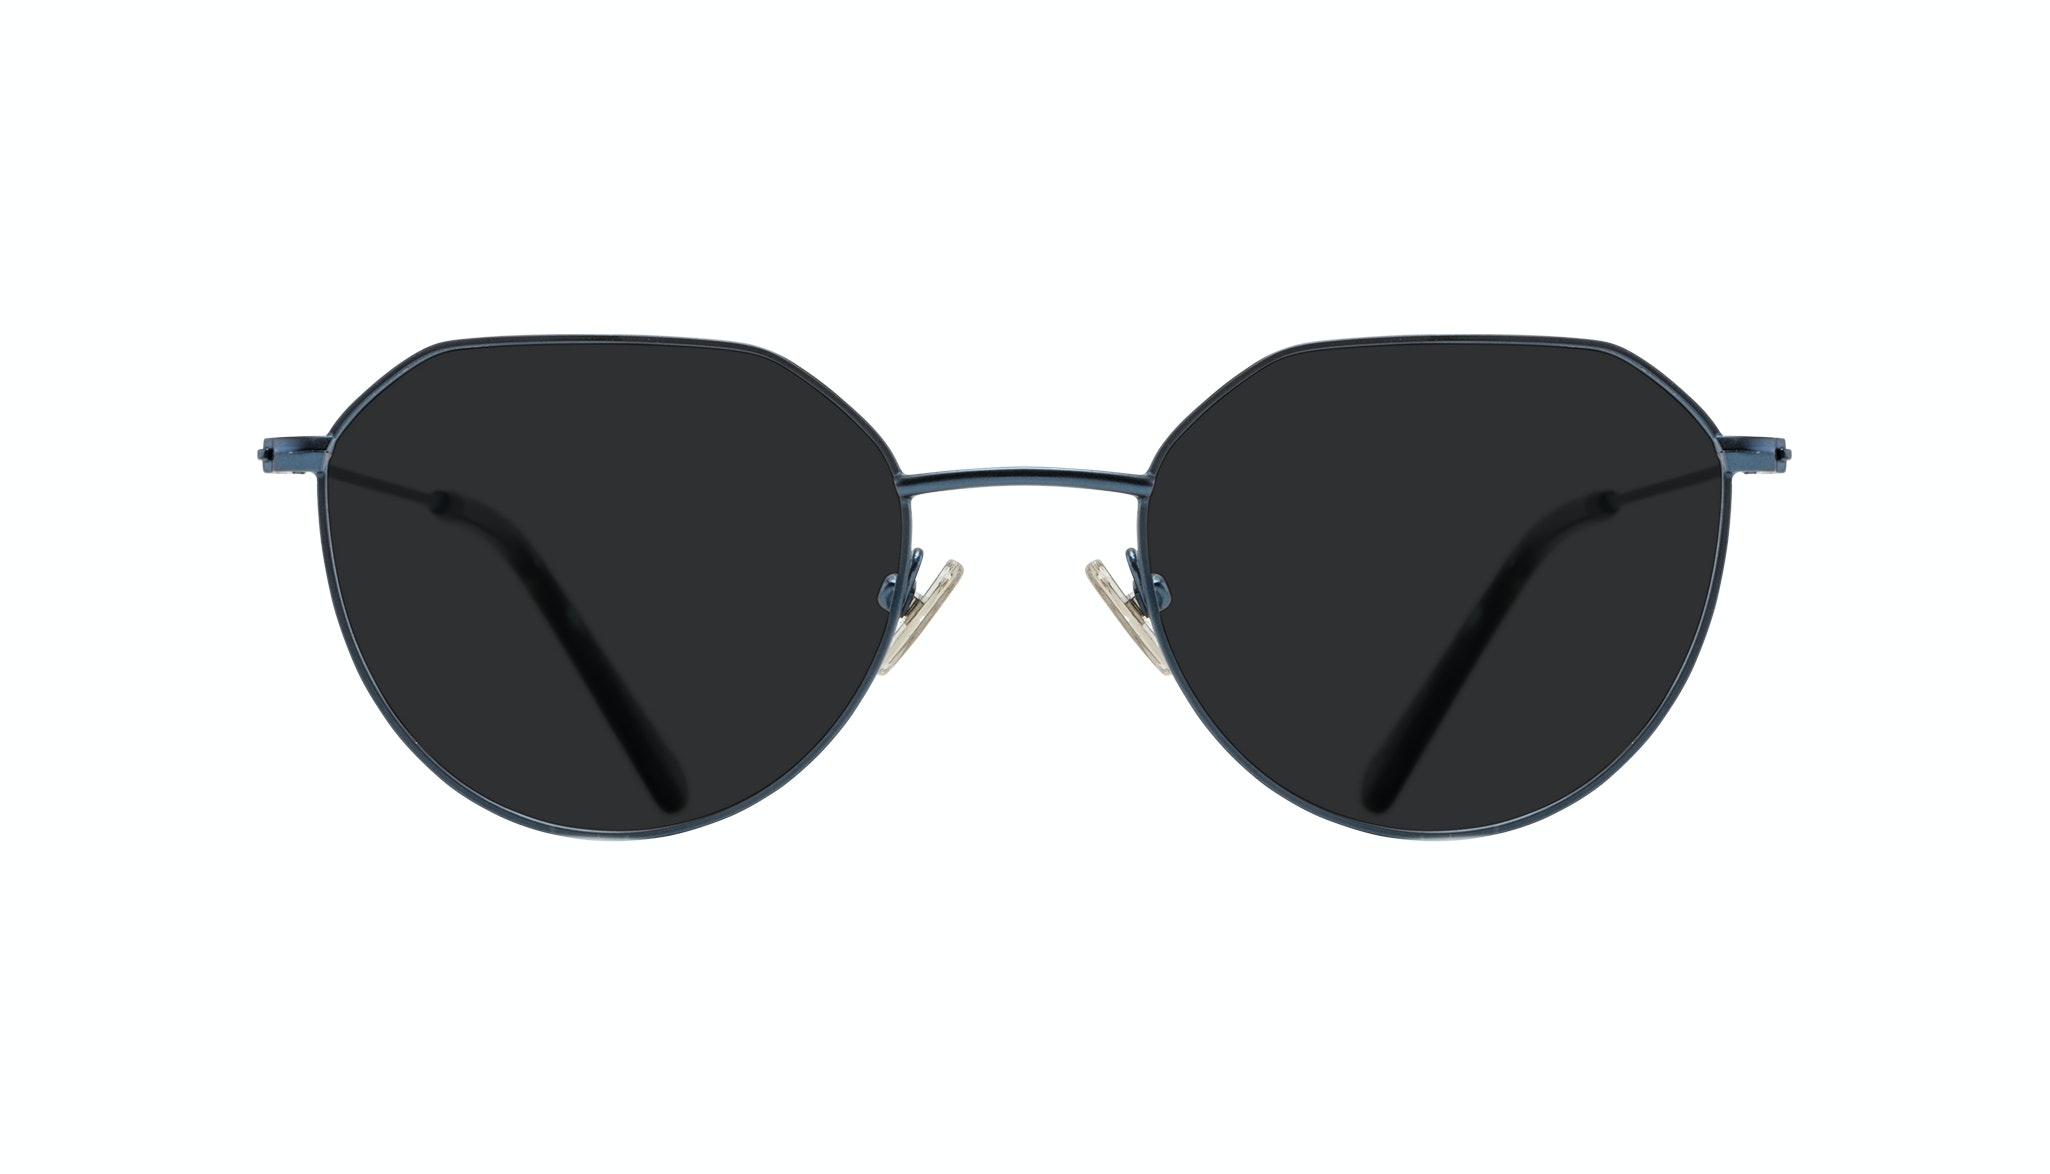 Affordable Fashion Glasses Round Sunglasses Women Prism Marine